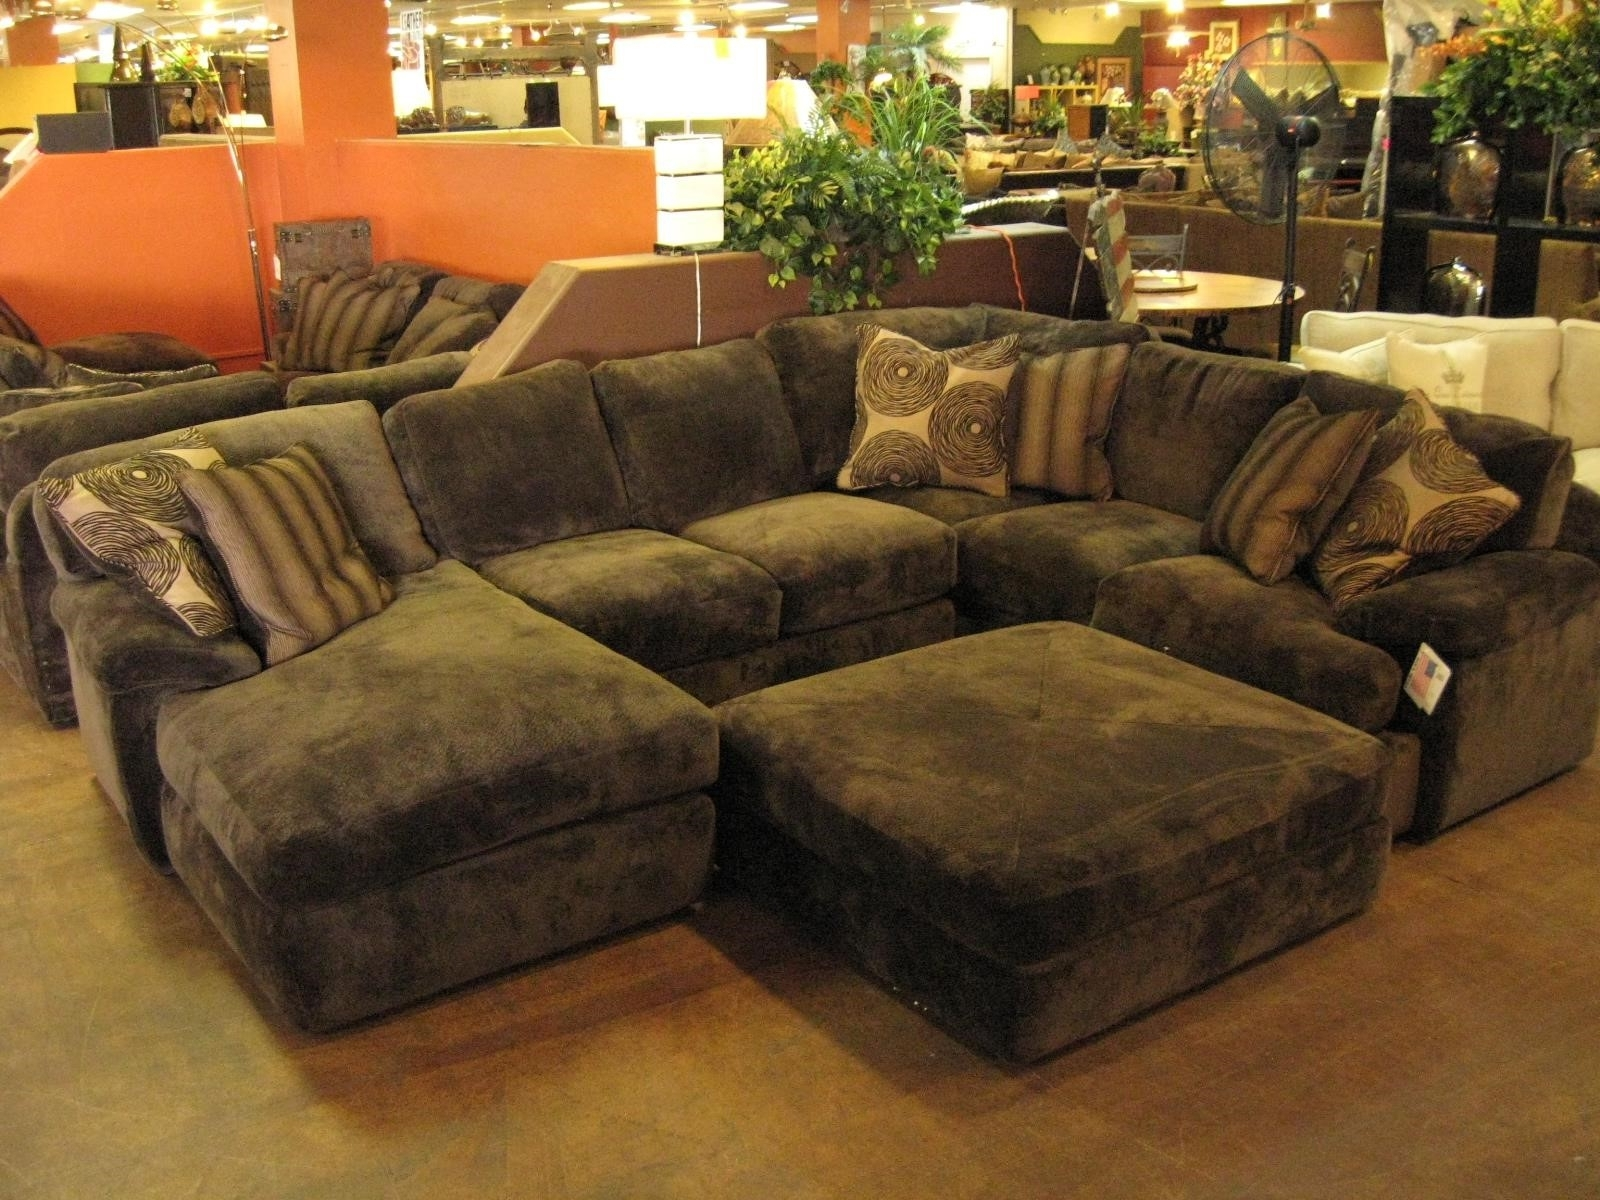 Most Recently Released Sofas Marvelous Brown Sectional Couch Cheap For Large Sofa With Intended For Sectional Sofas With Chaise Lounge And Ottoman (View 12 of 15)